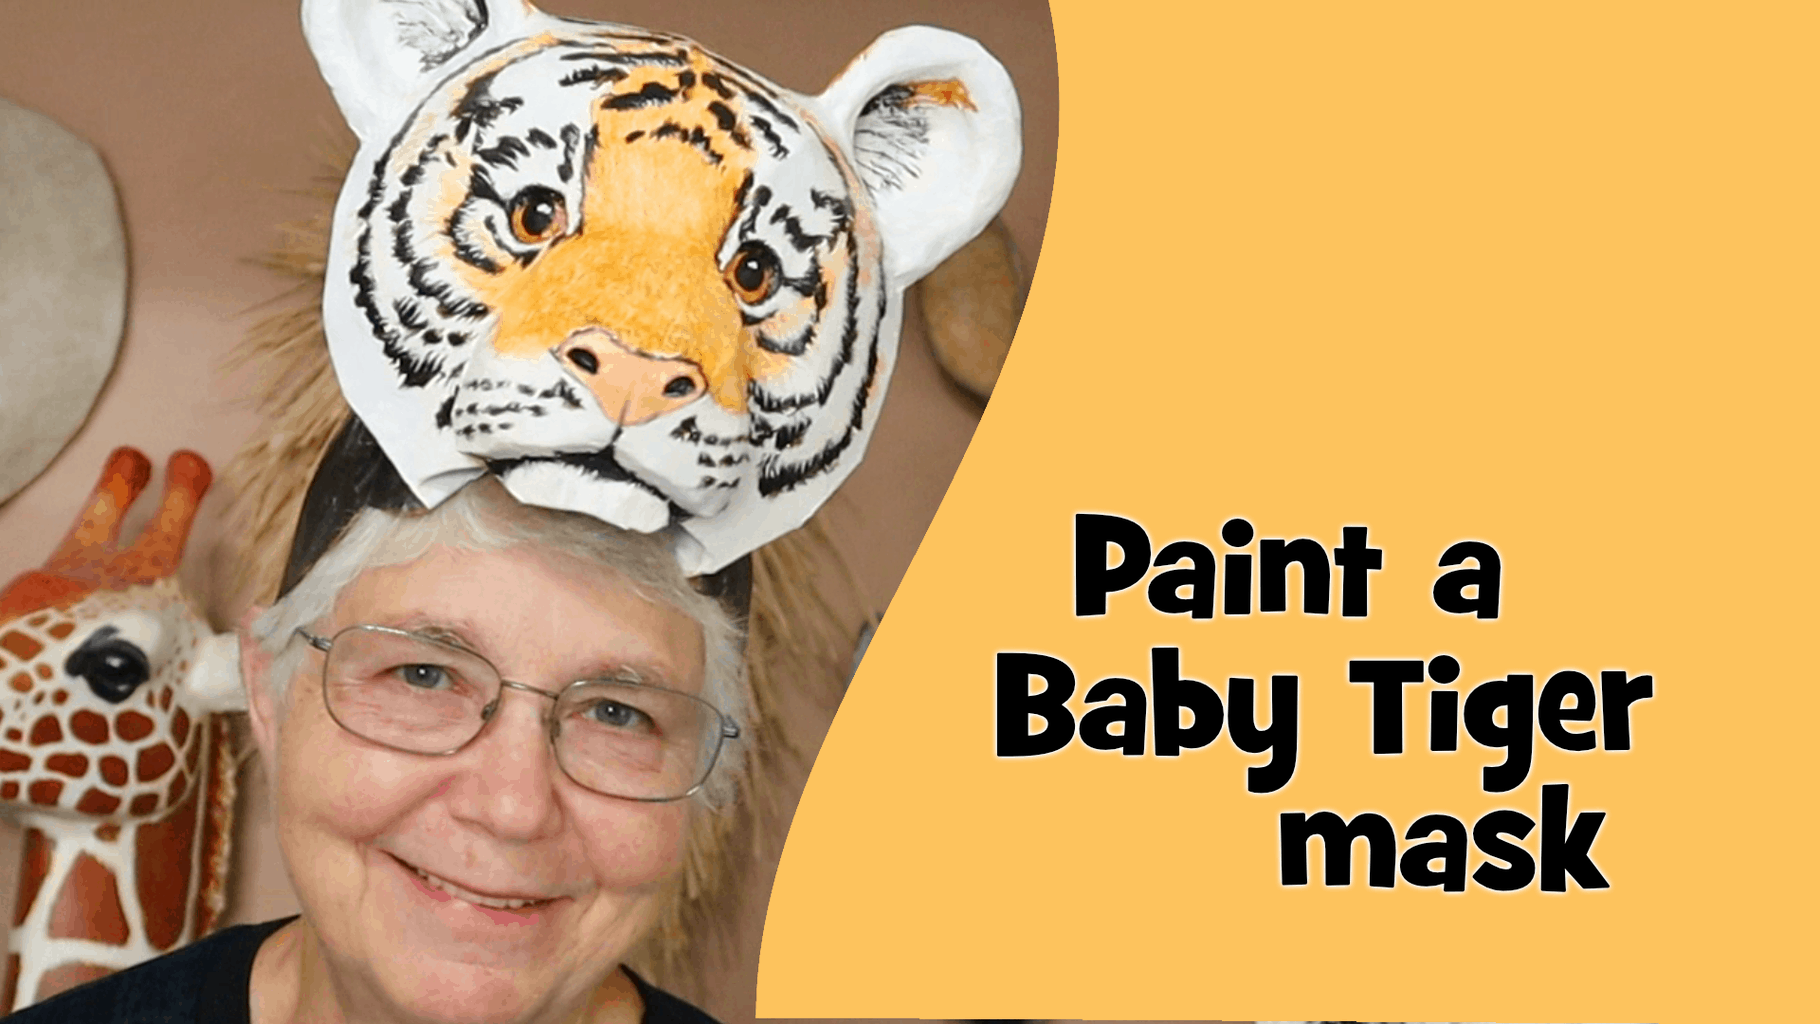 Paint a baby tiger mask